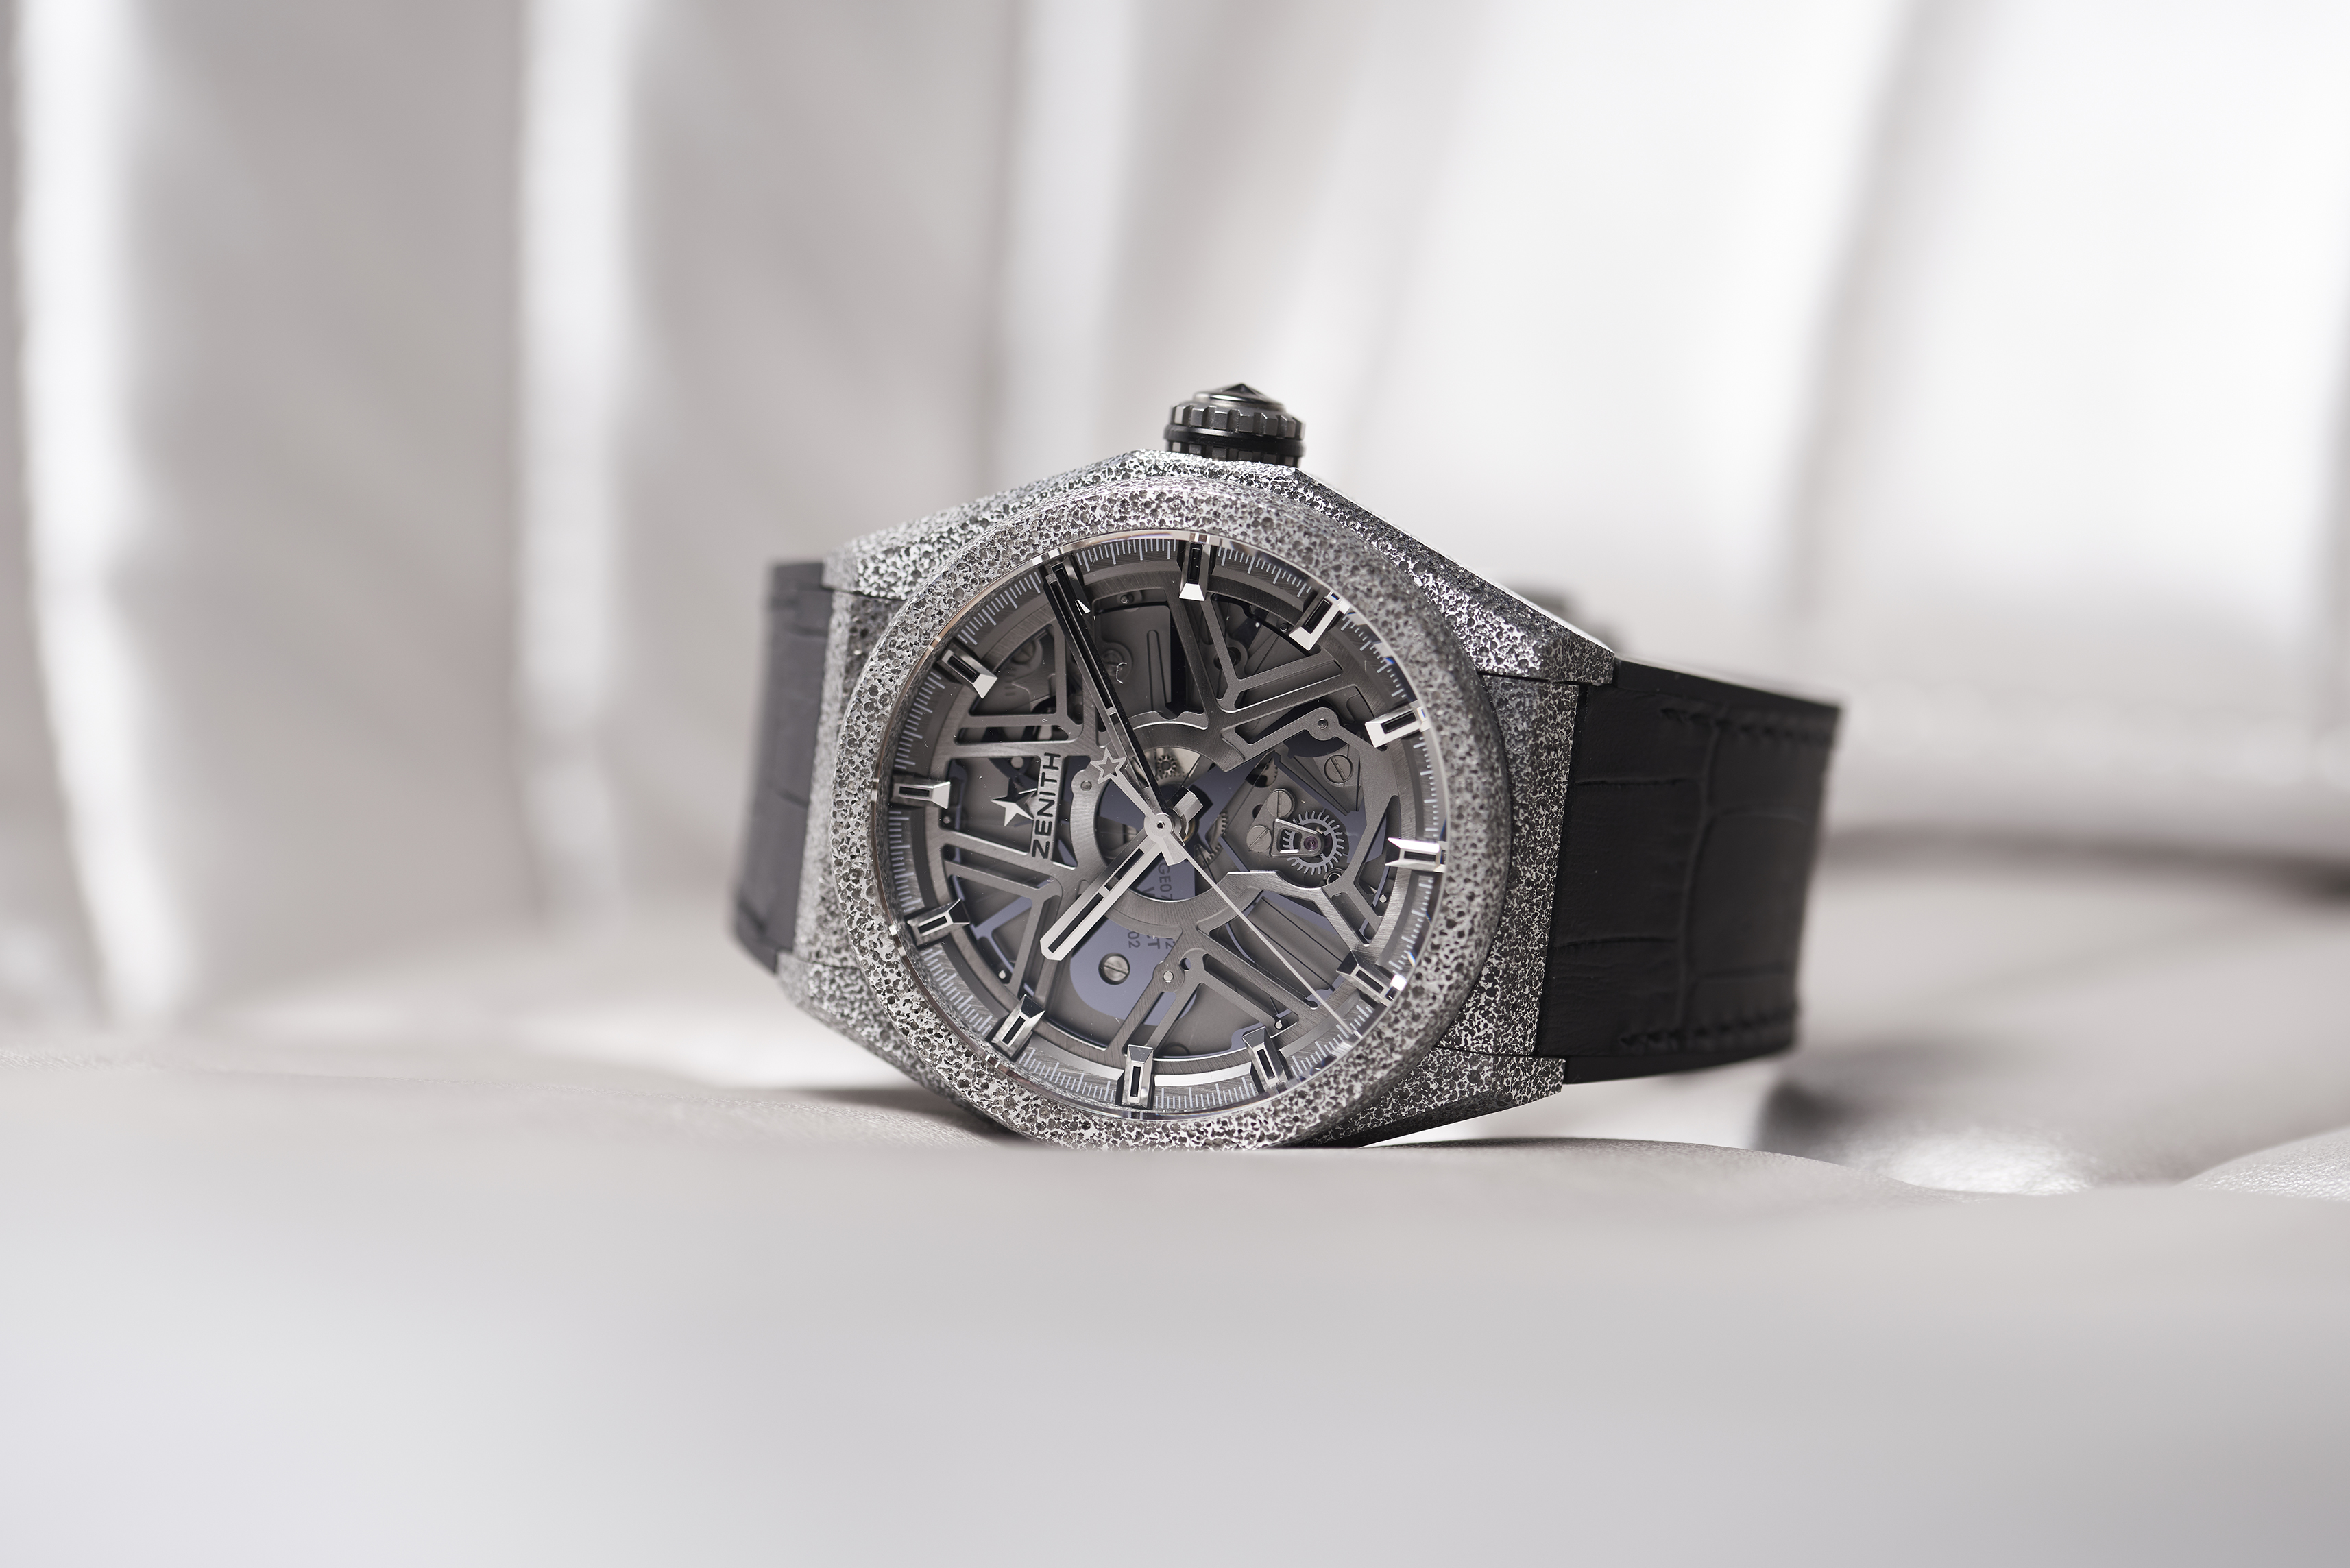 ZENITH Defy Lab A Photo PR Ambiance (8)